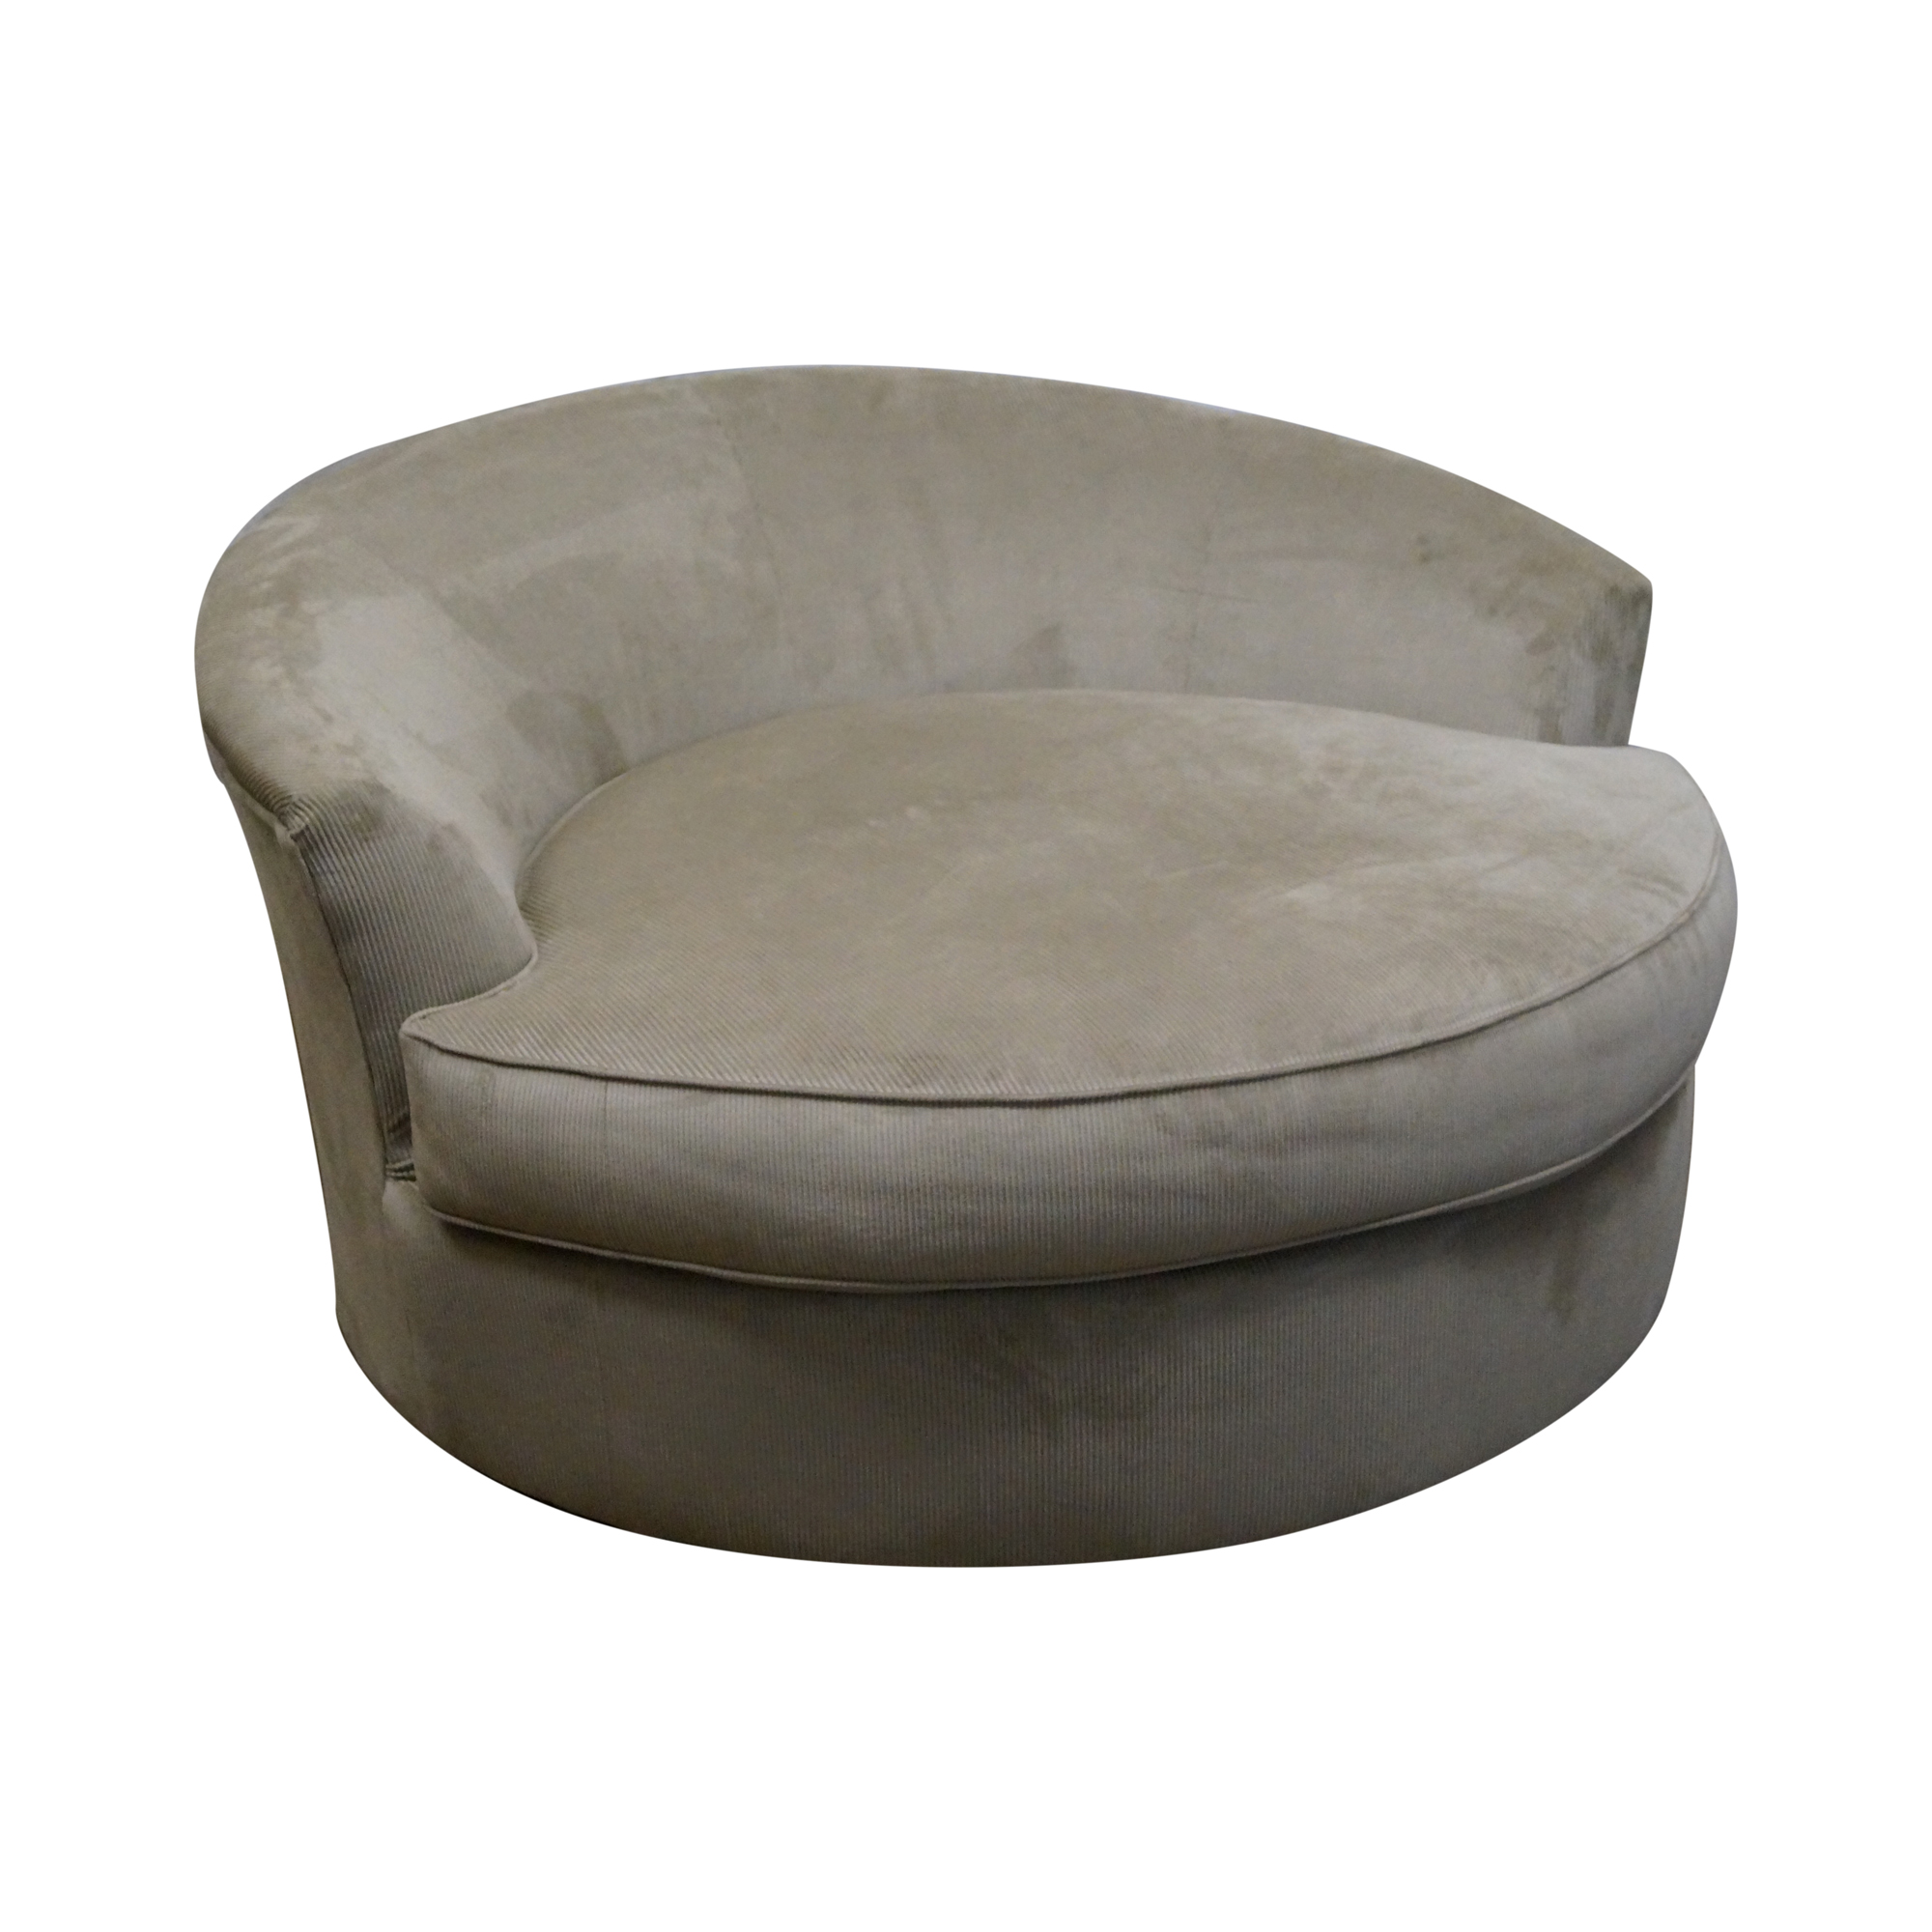 Revolving Lounge Chair Covers Hire Newcastle Milo Baughman Round Swivel Loveseat